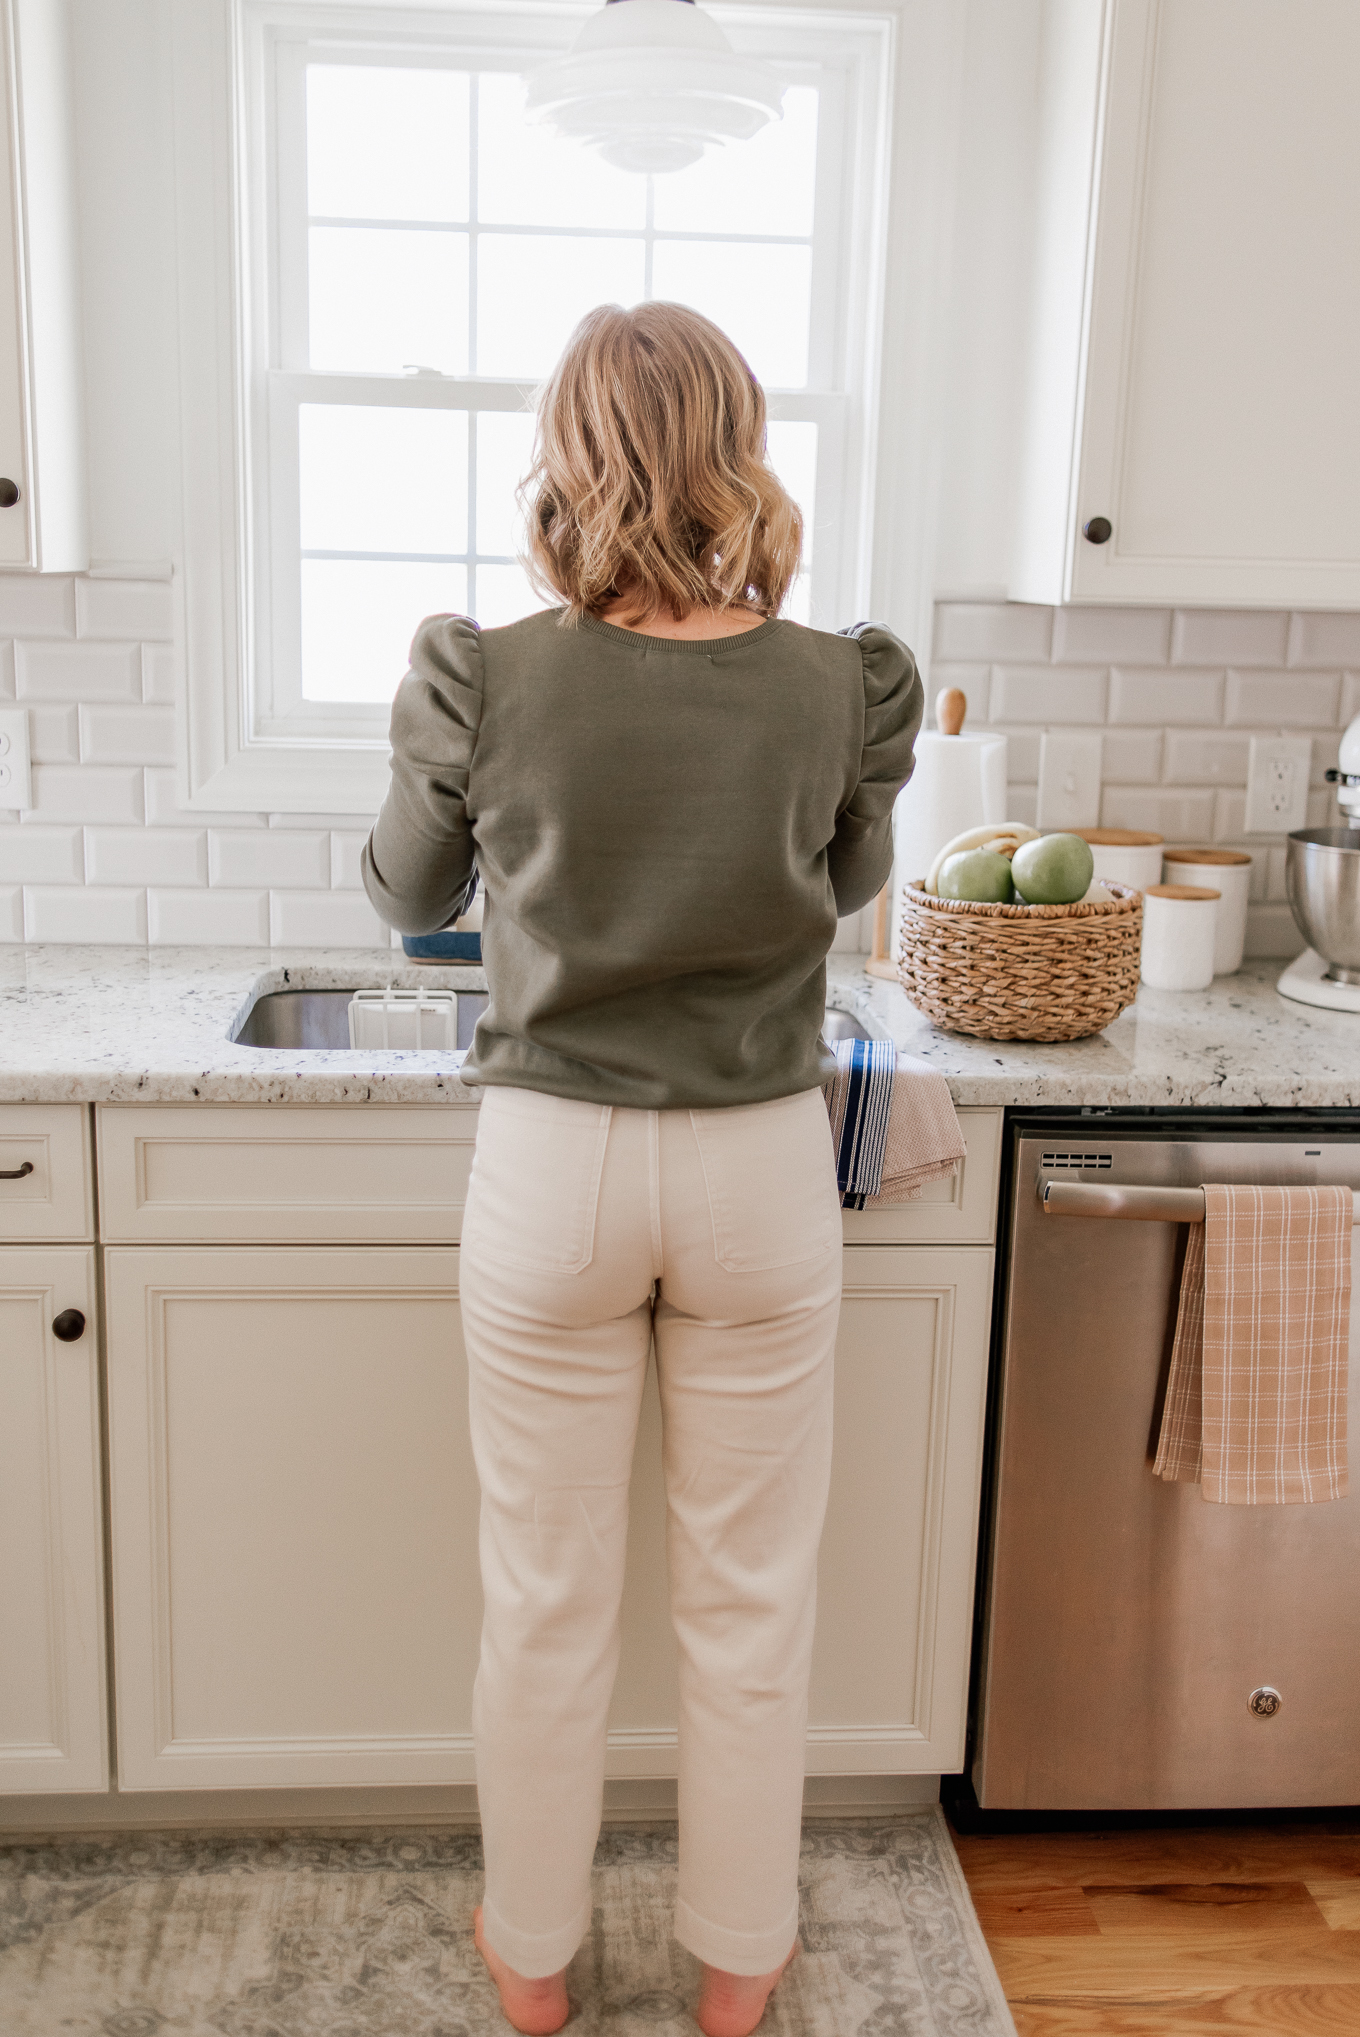 Joss & Main Kitchen Decor Finds | How to Decorate Your Countertops | Louella Reese